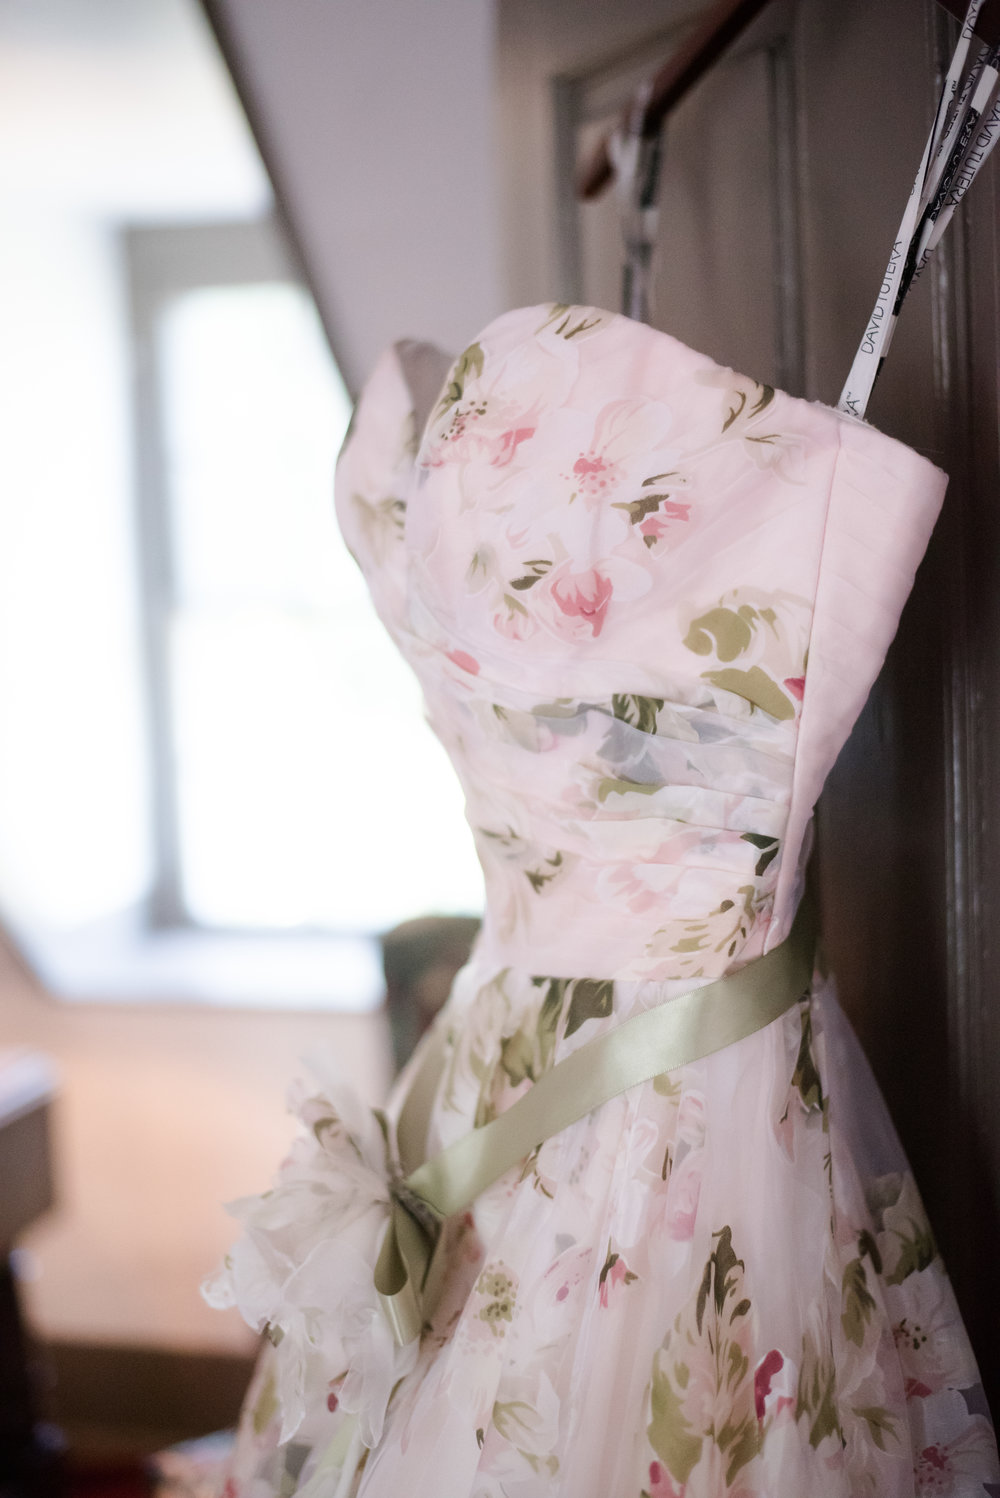 midsummers-eve-wedding-floral-blush-dress-david-tutera-cary-hill-plantation-photo-virginia-bride-12.jpg